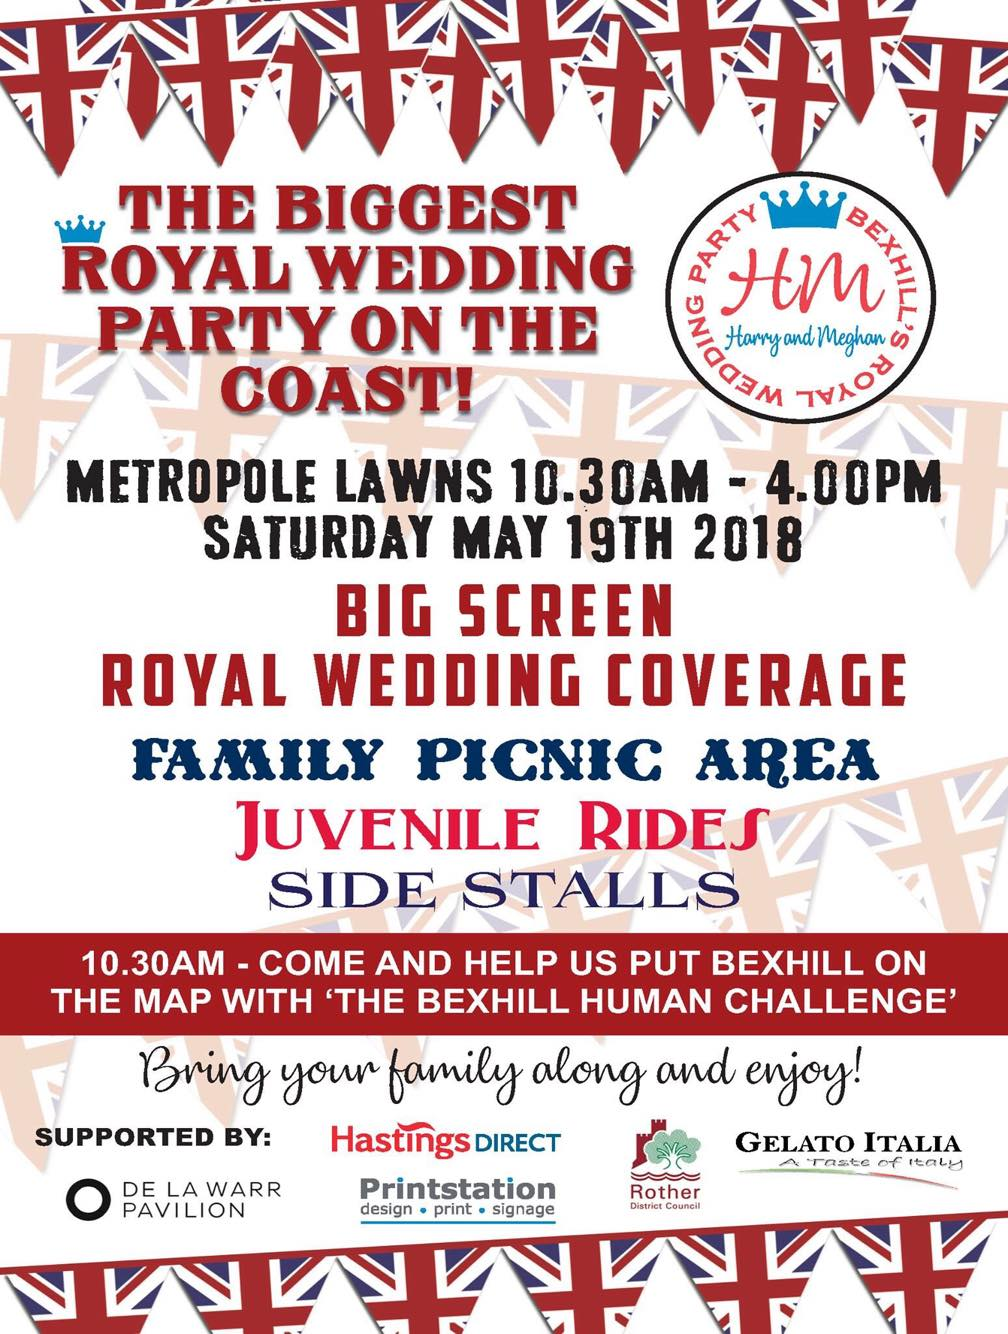 BEXHILL\'S ROYAL WEDDING PARTY - DLWP, The De La Warr Pavilion ...